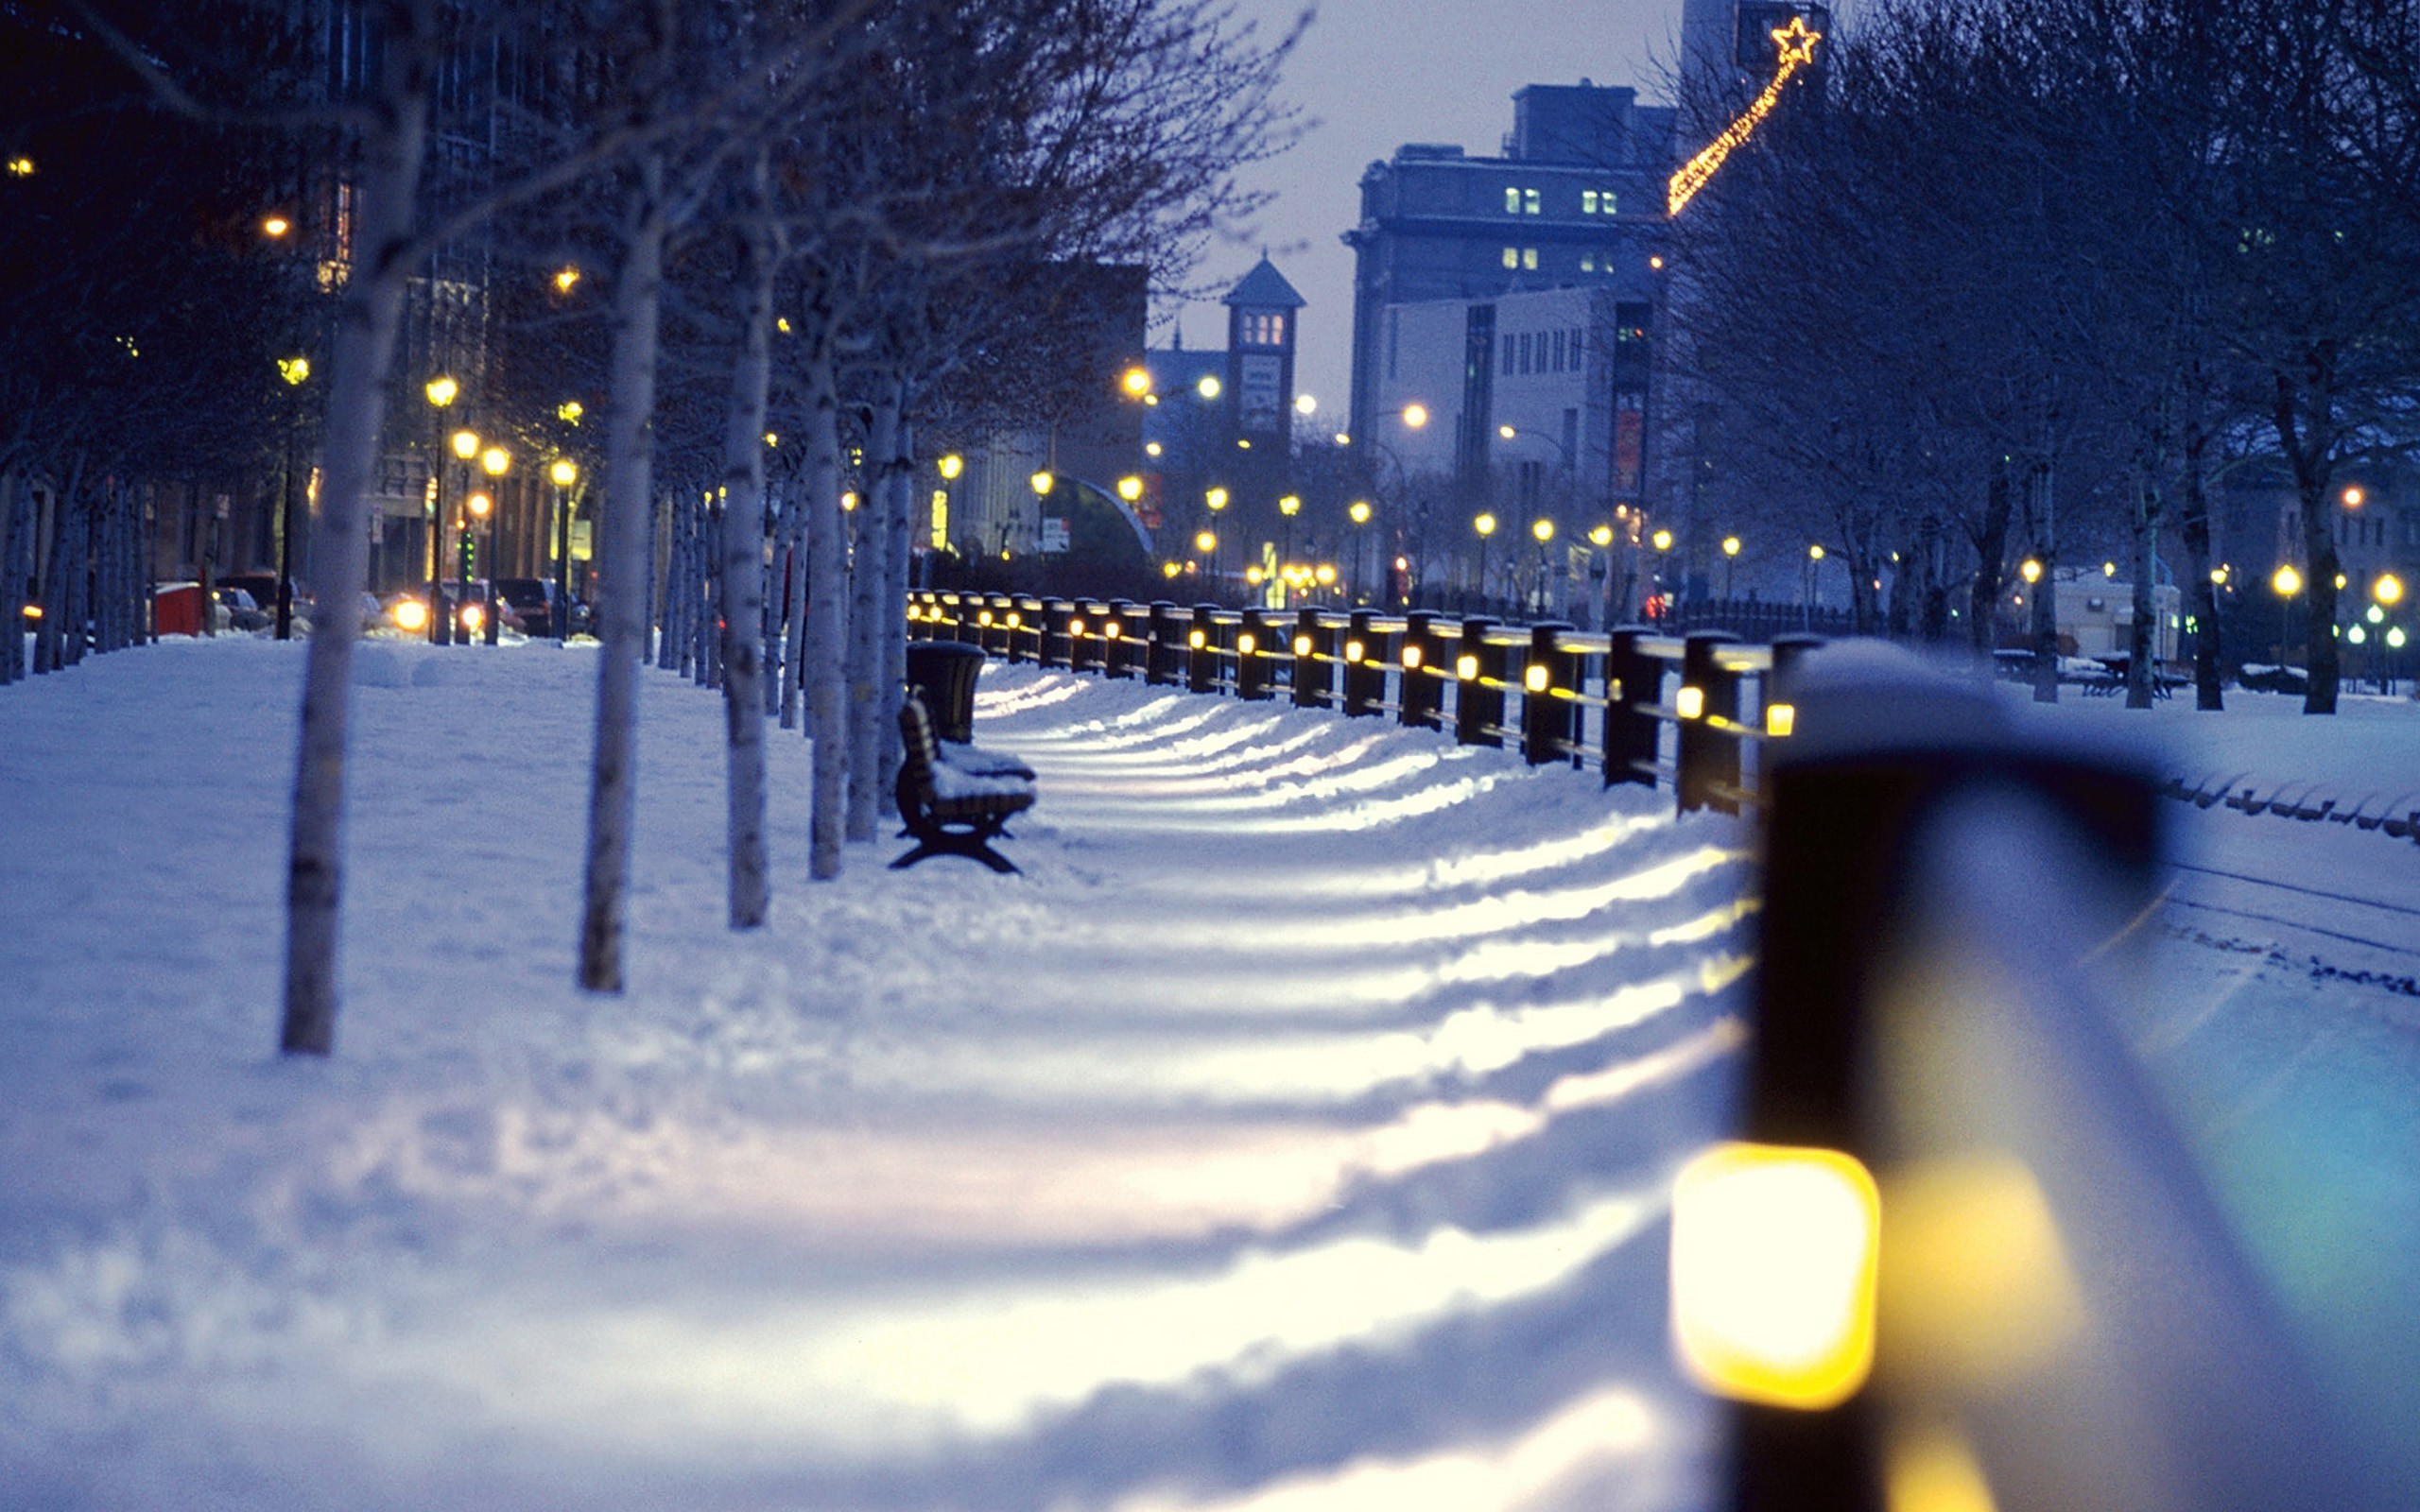 Cityscape City Winter Night Snow Wallpapers Hd Night City Winter 366183 Hd Wallpaper Backgrounds Download